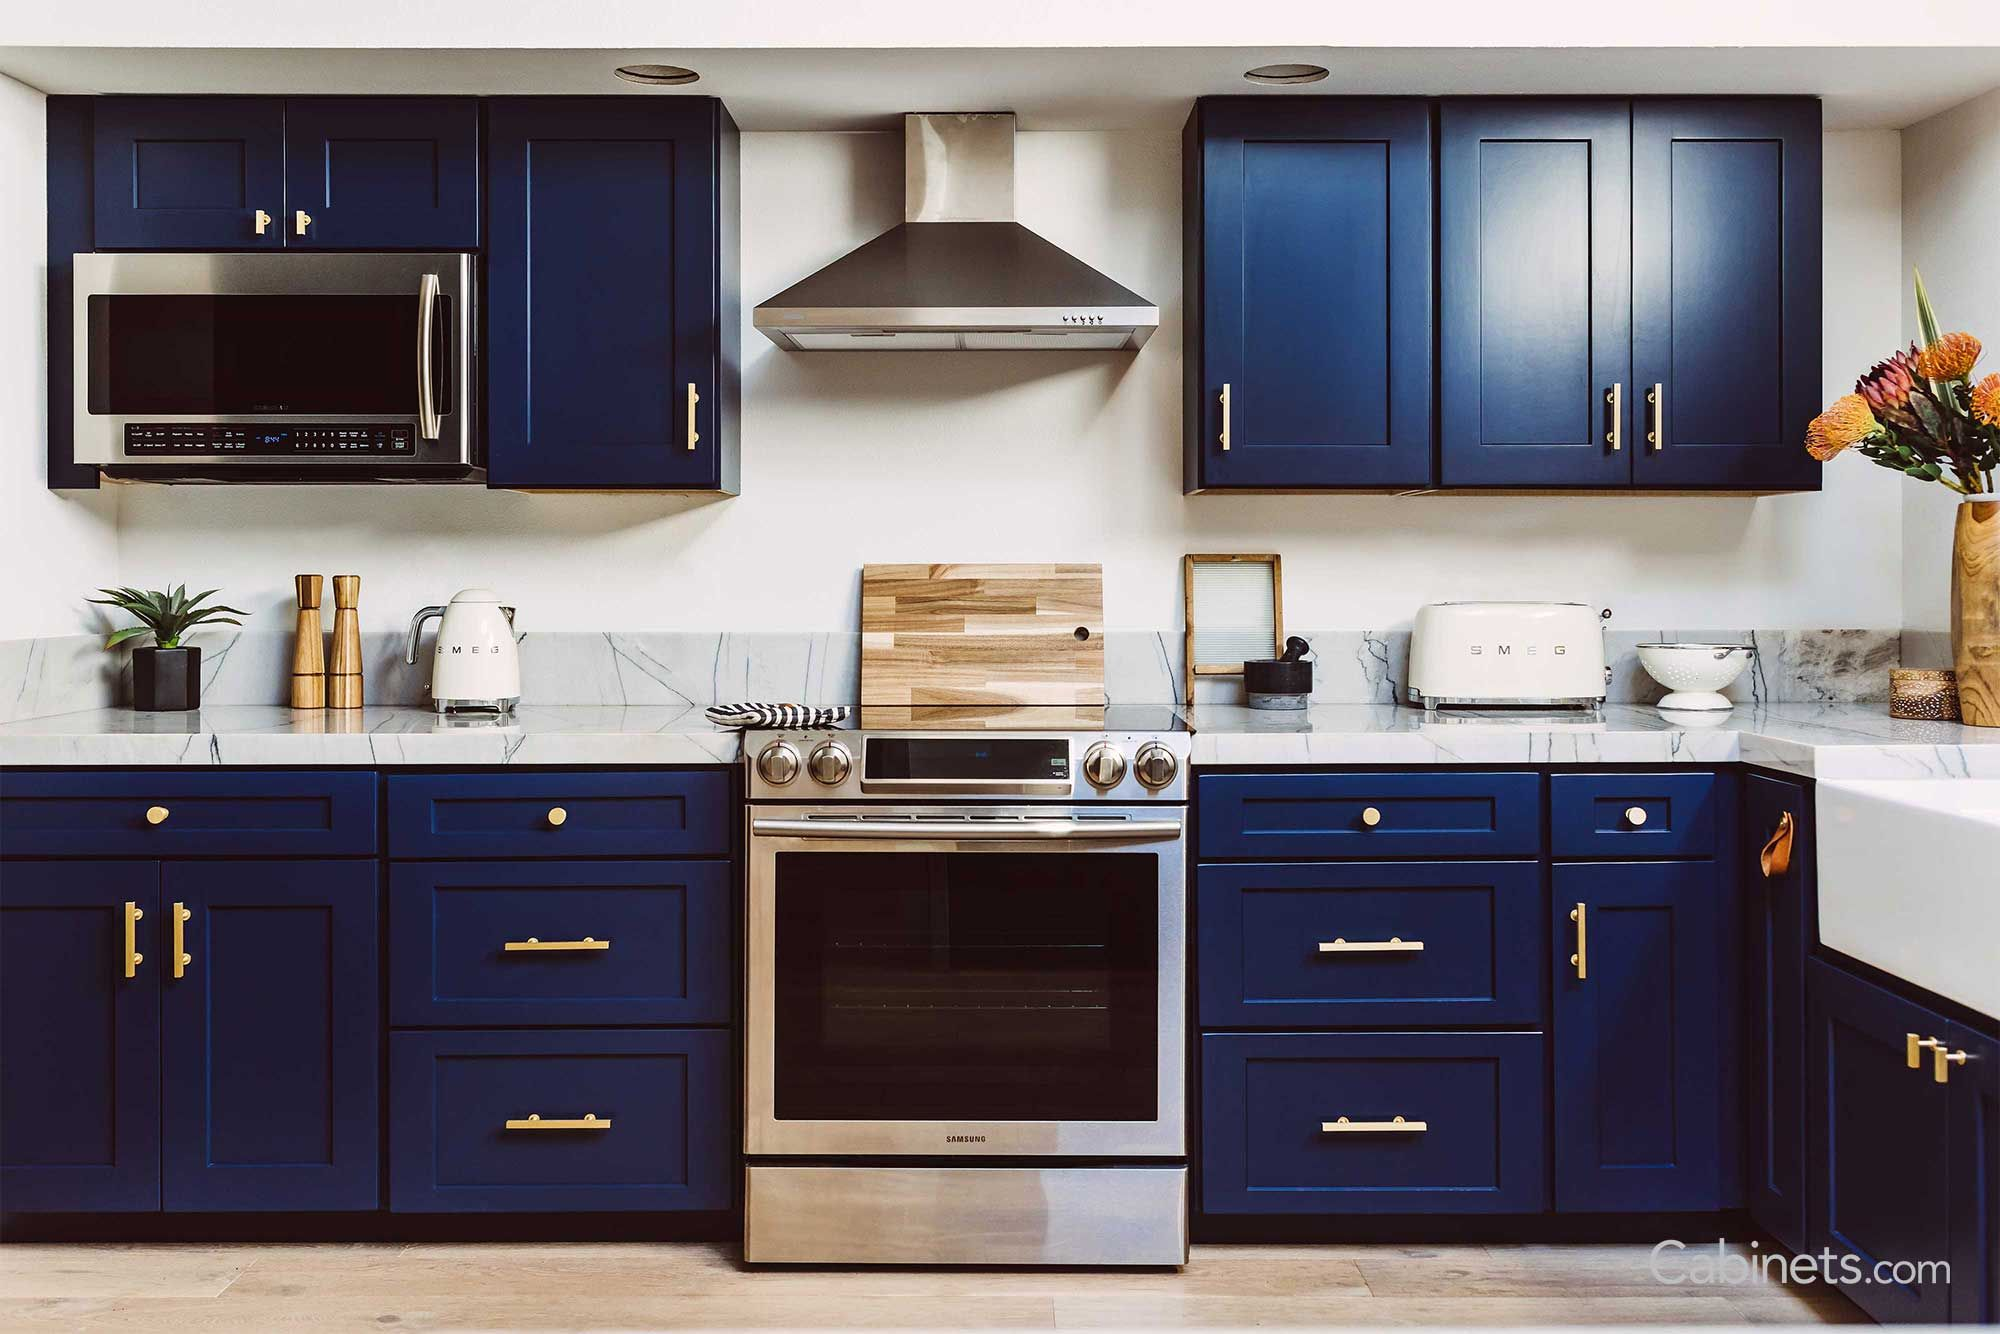 Pin By James Campbell On Kitchen Design Ideas Kitchen Cupboard Designs Kitchen Design Small Navy Kitchen